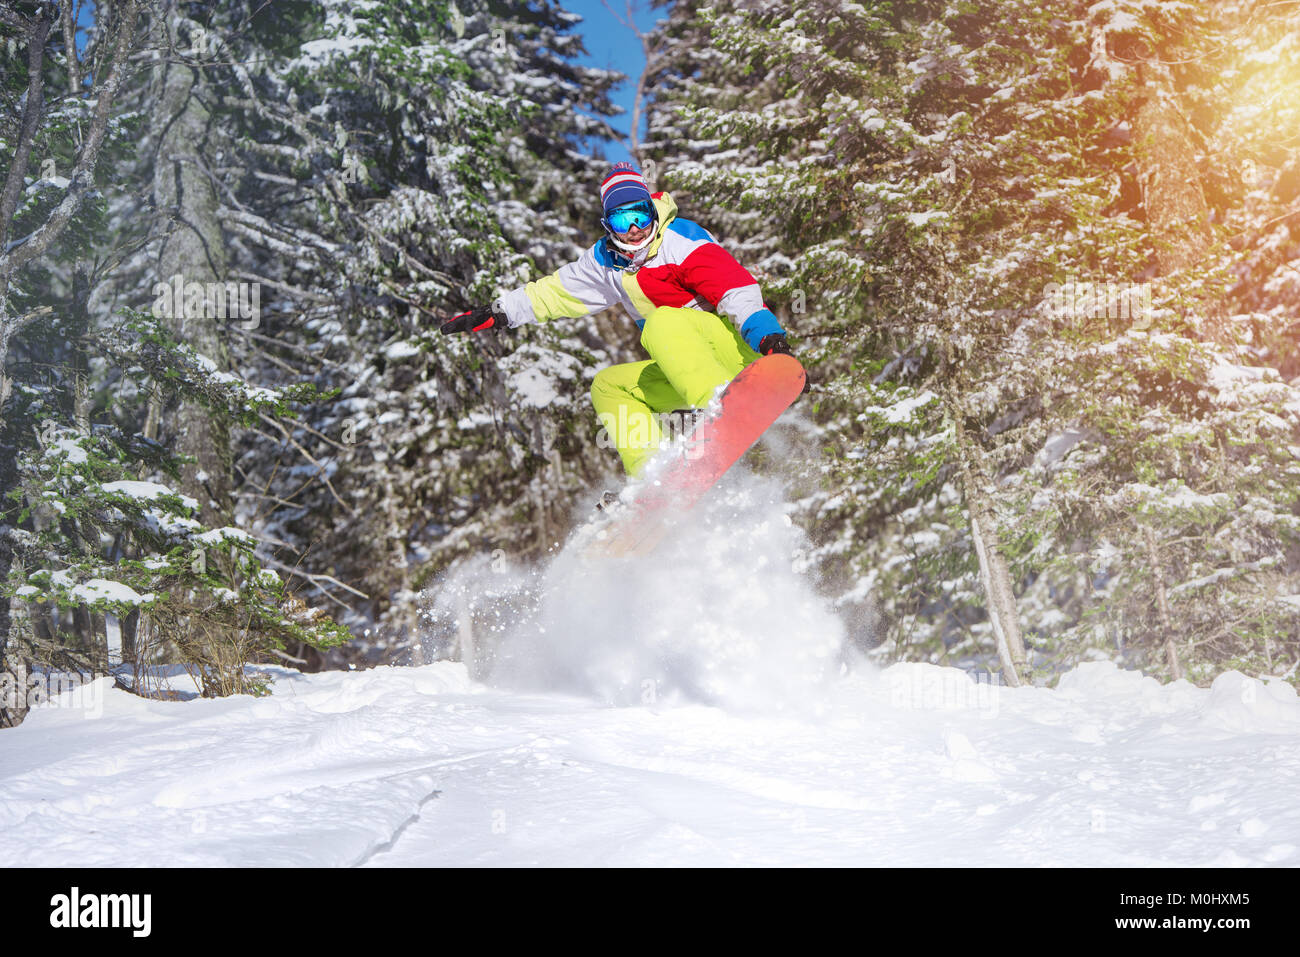 Snowboarder backcountry jump offpiste against frozen forest - Stock Image